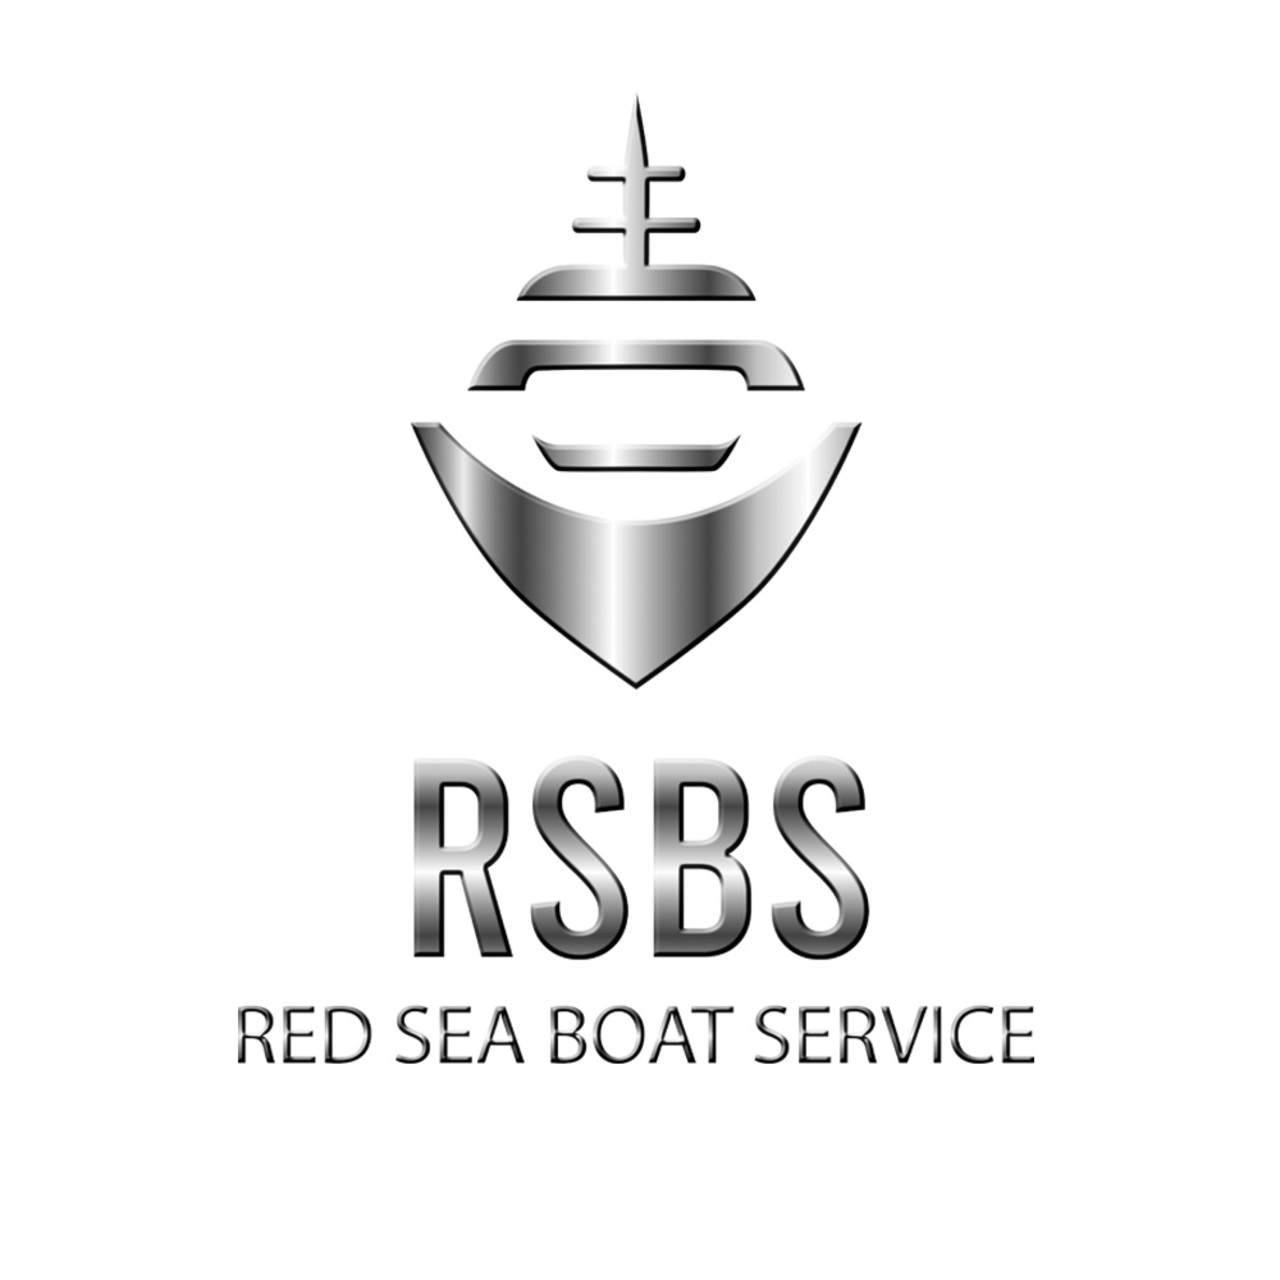 Red Sea Boat Service Co.